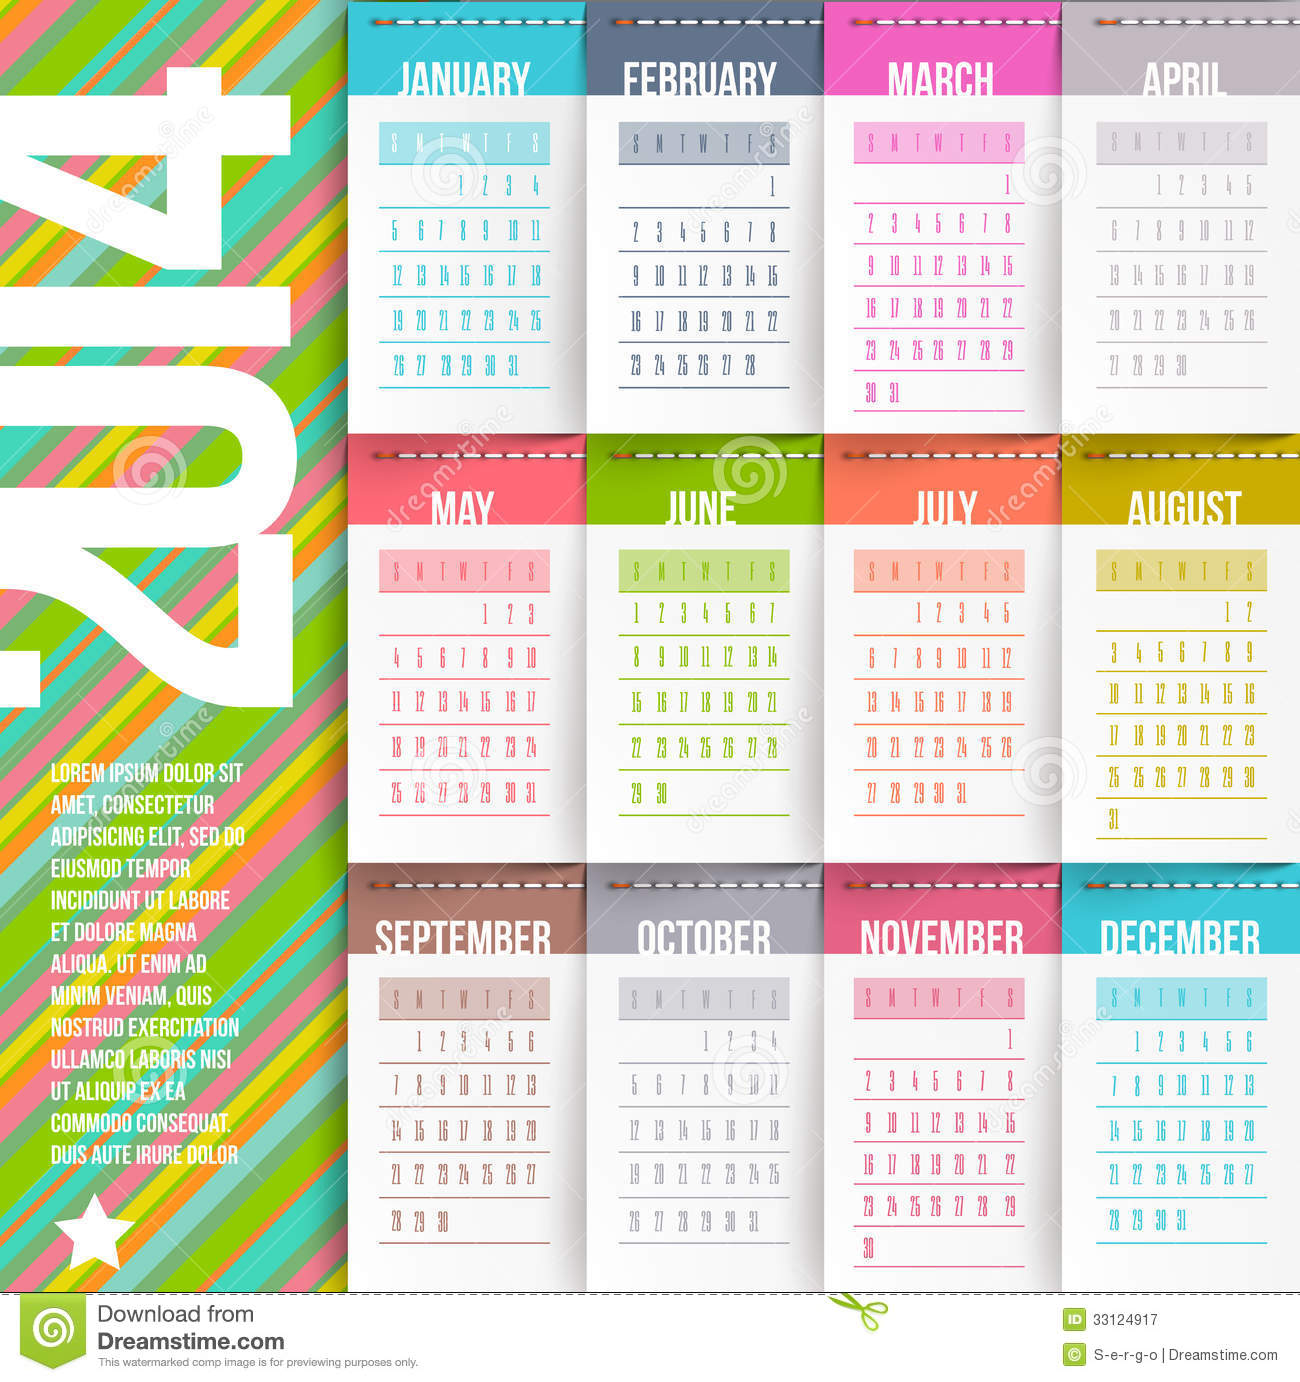 Calendar Of 2014 Year Stock Vector Illustration Of Calendar 33124917